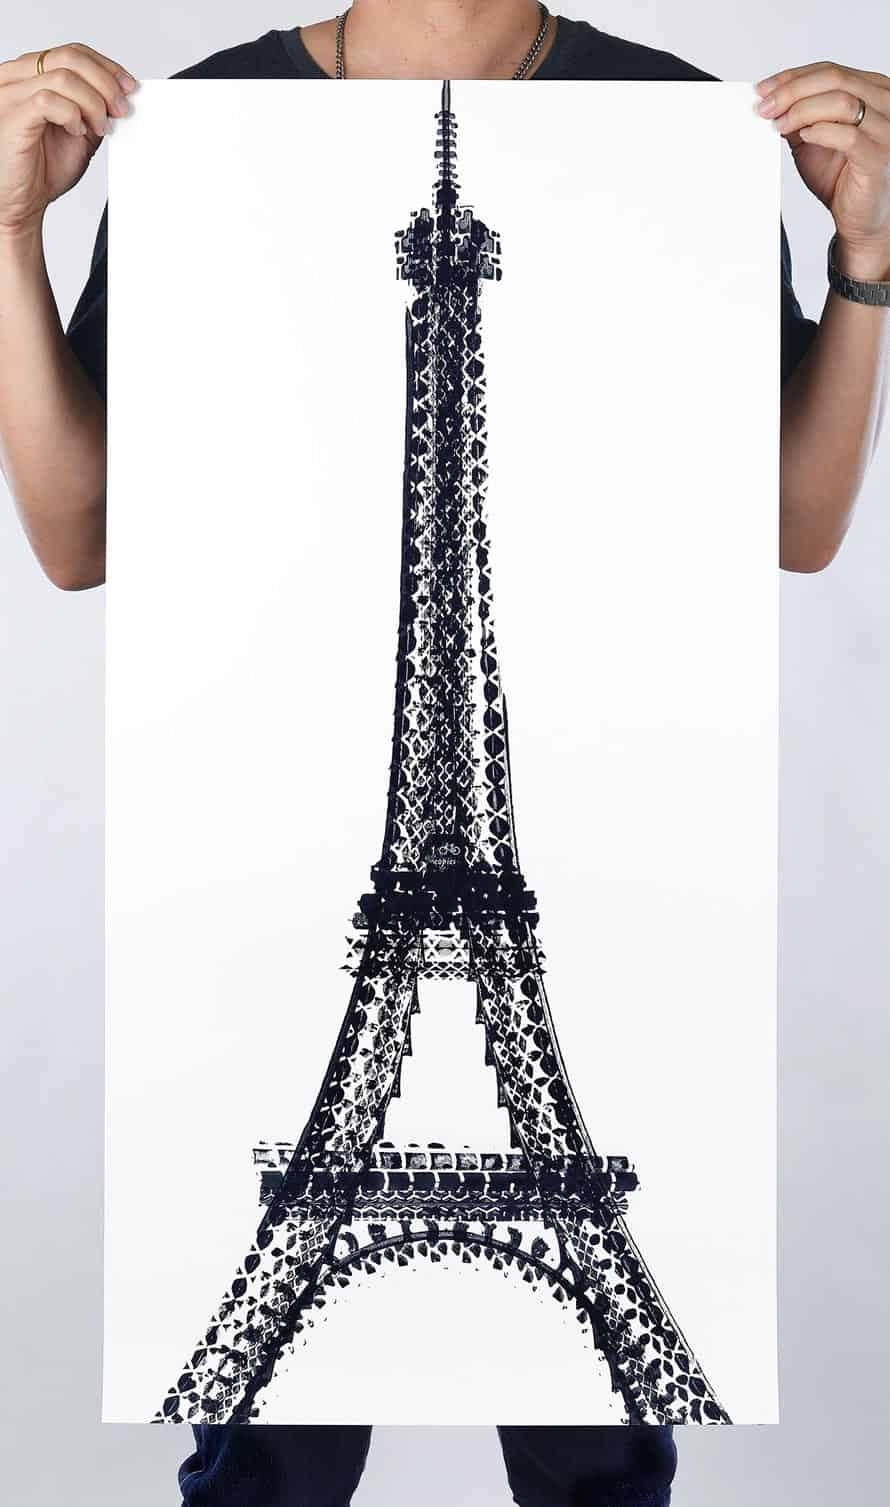 Contemporary Art with Bicycle Tire by Chinese Contemporary Artist Thomas Yang Eiffel Tower